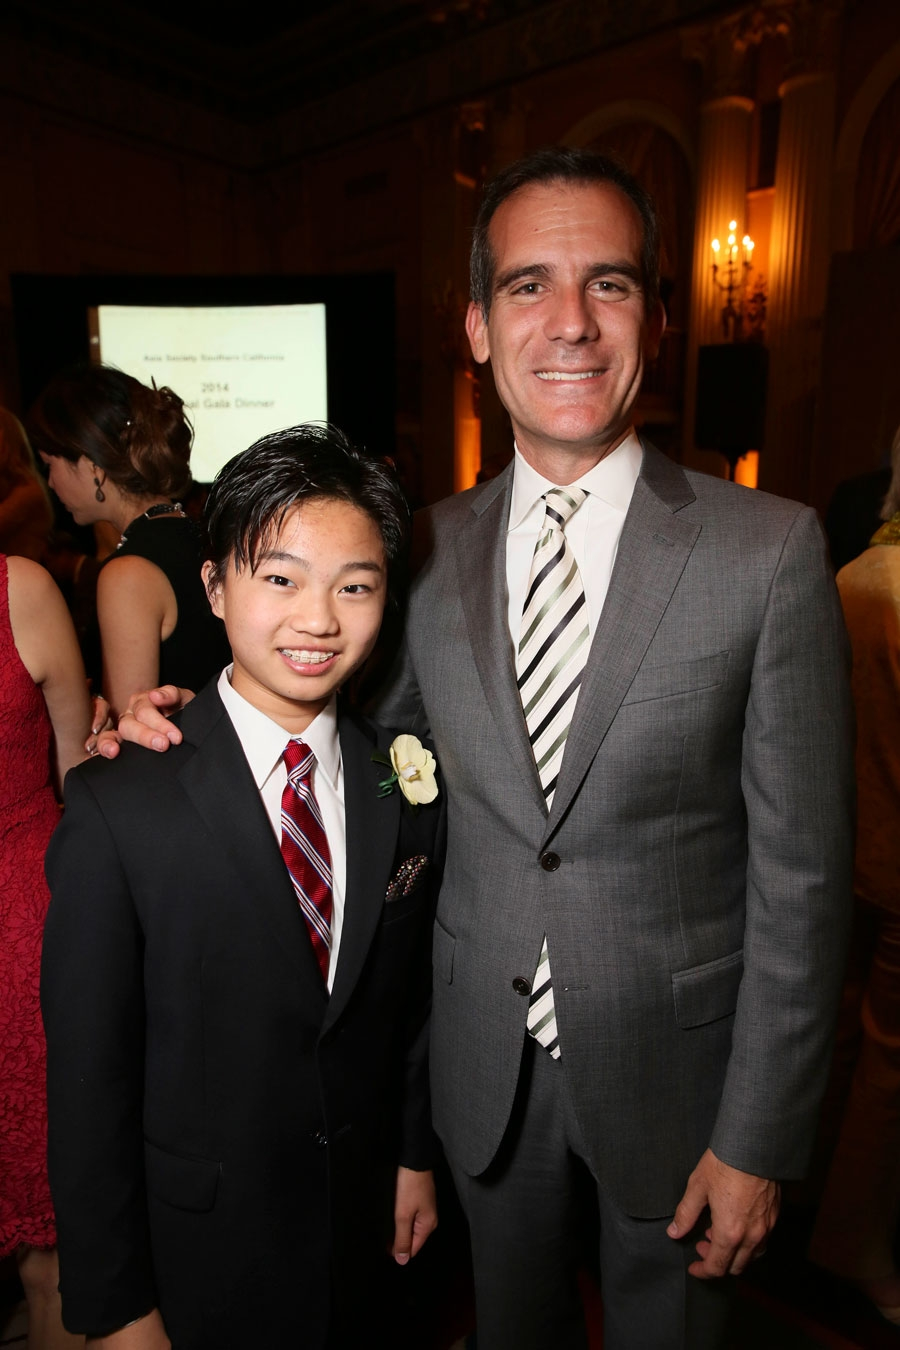 From left, Ray Ushikubo, Pianist  and Los Angeles Mayor Eric Garcetti pose during the Asia Society Southern California 2014 Annual Gala held at the Millennium Biltmore Hotel on Monday, May 19, 2014, in Los Angeles, Calif. (Photo by Ryan Miller/Capture Imaging)